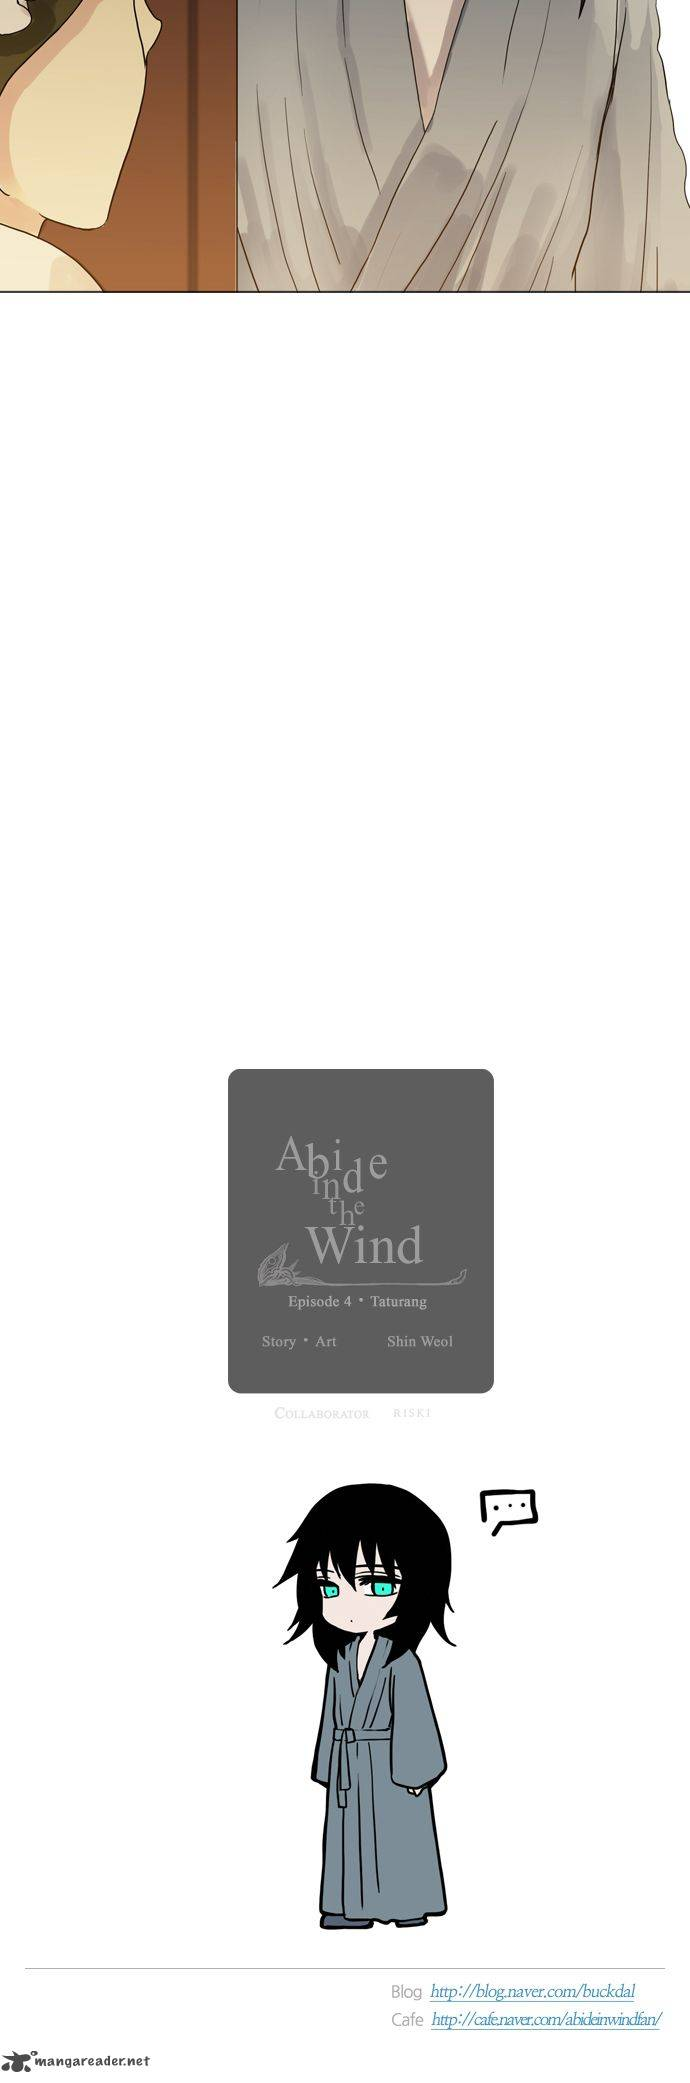 abide_in_the_wind_86_20